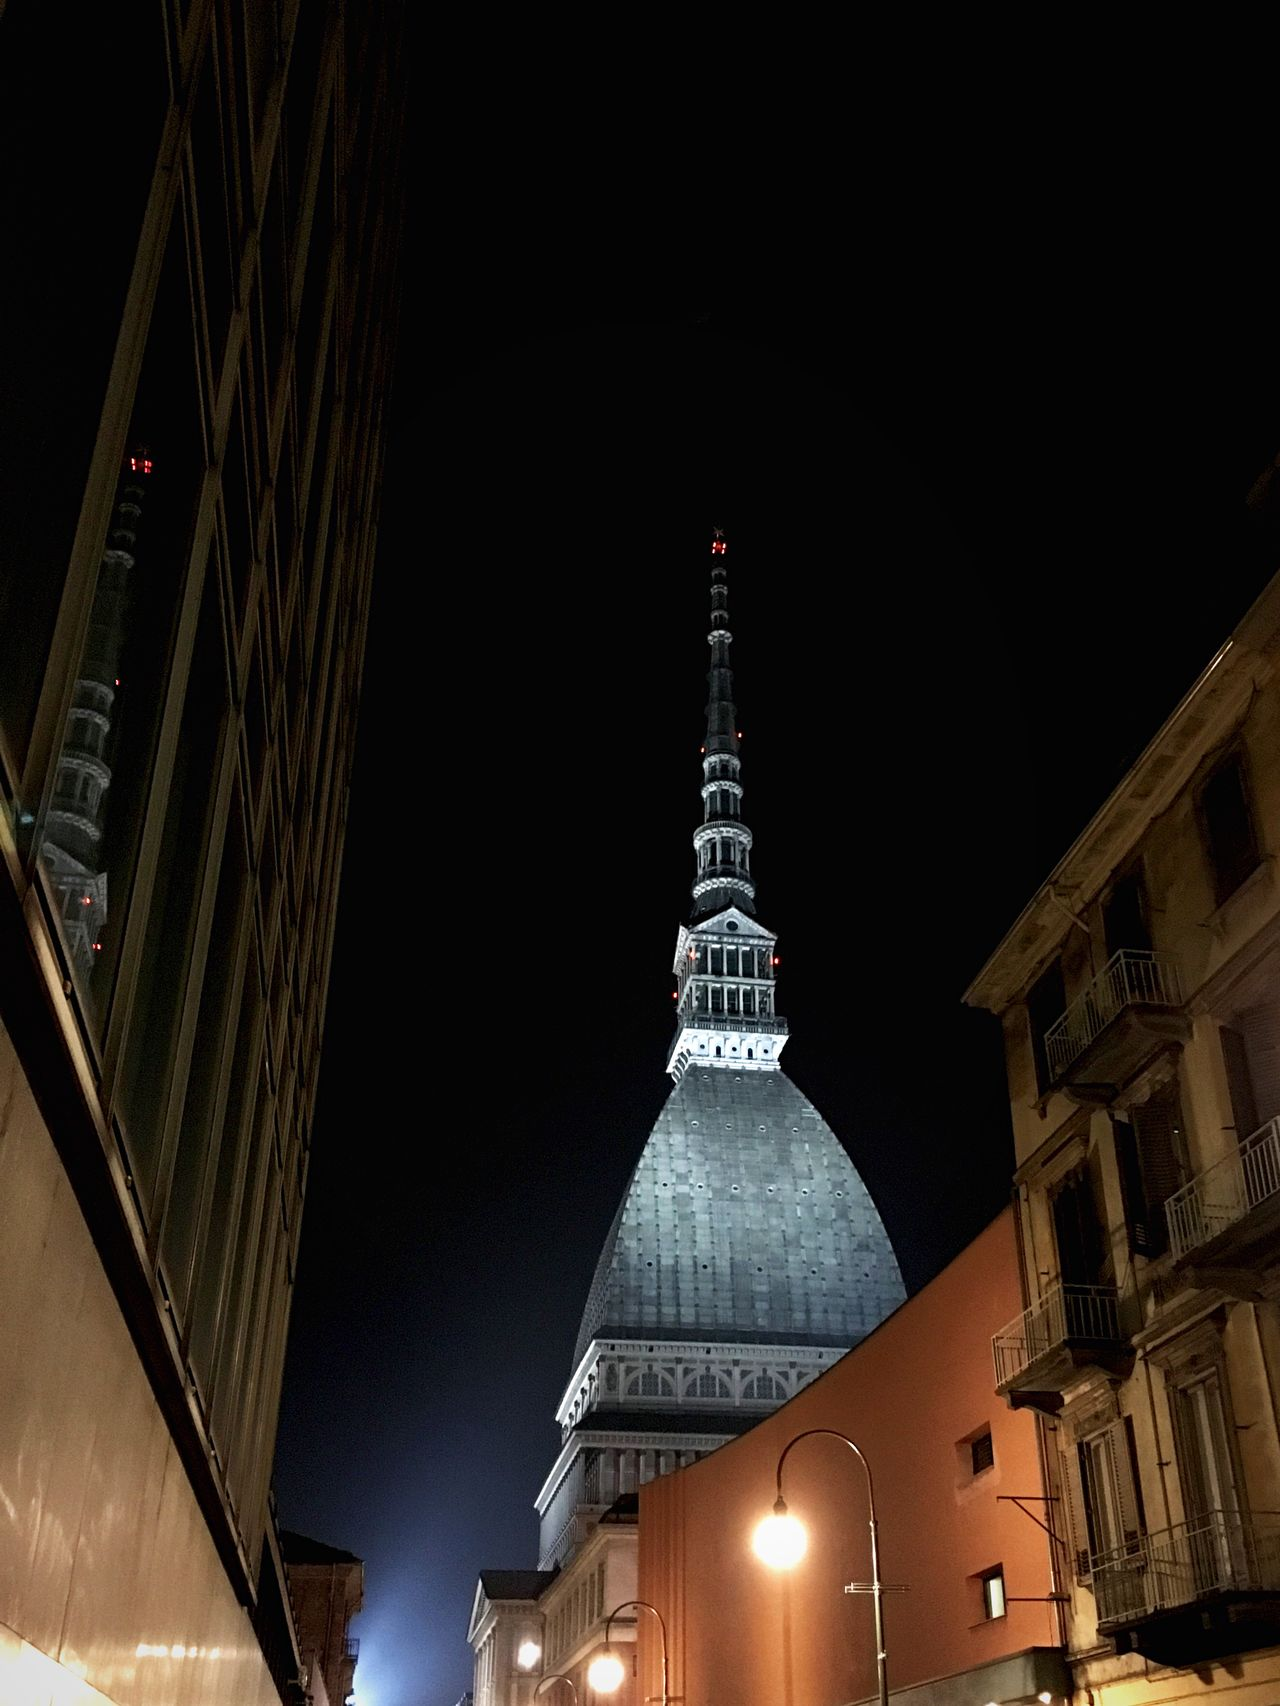 Mole Antonelliana in Turin Mole Antonelliana Moleantonelliana Turin Turin Italy Torino Italy Italia Monument Monuments Landmark Landmarks Urban Urban Landscape City Building Exterior Building Buildings Streetlights Night Night Landscape Night Lights Historical Building Historical Monuments Tower Towers